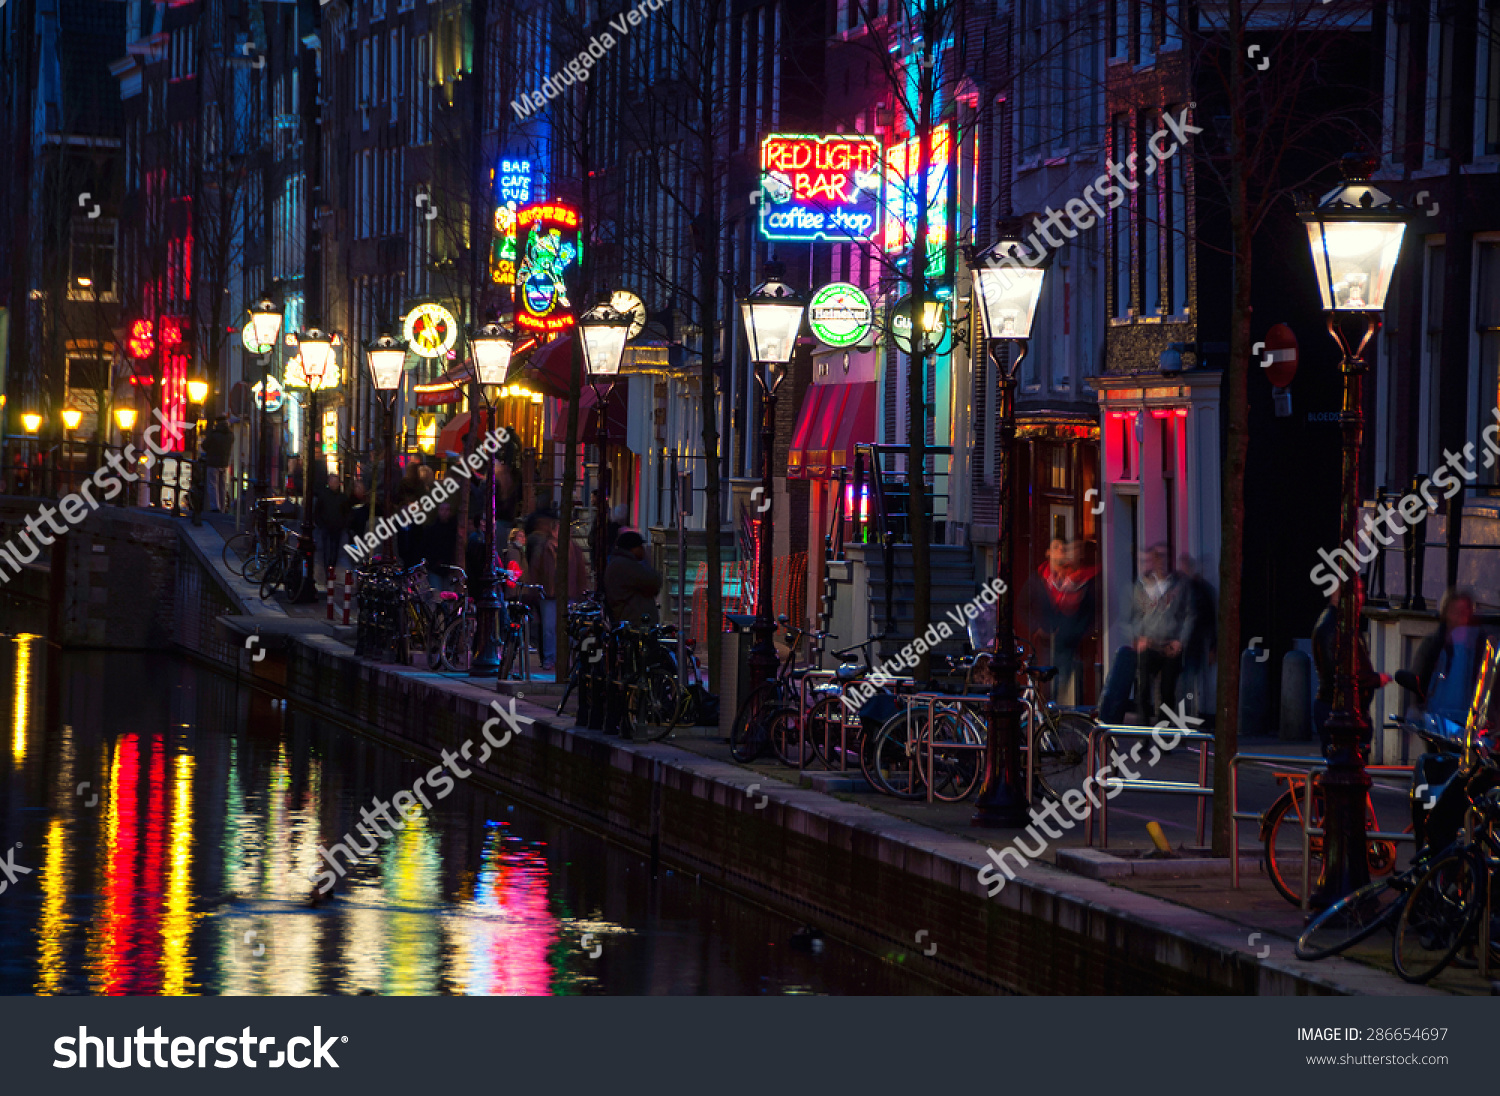 Amsterdam netherlands march 16 2014 night stock photo royalty free amsterdam netherlands march 16 2014 night view of red light district aloadofball Image collections